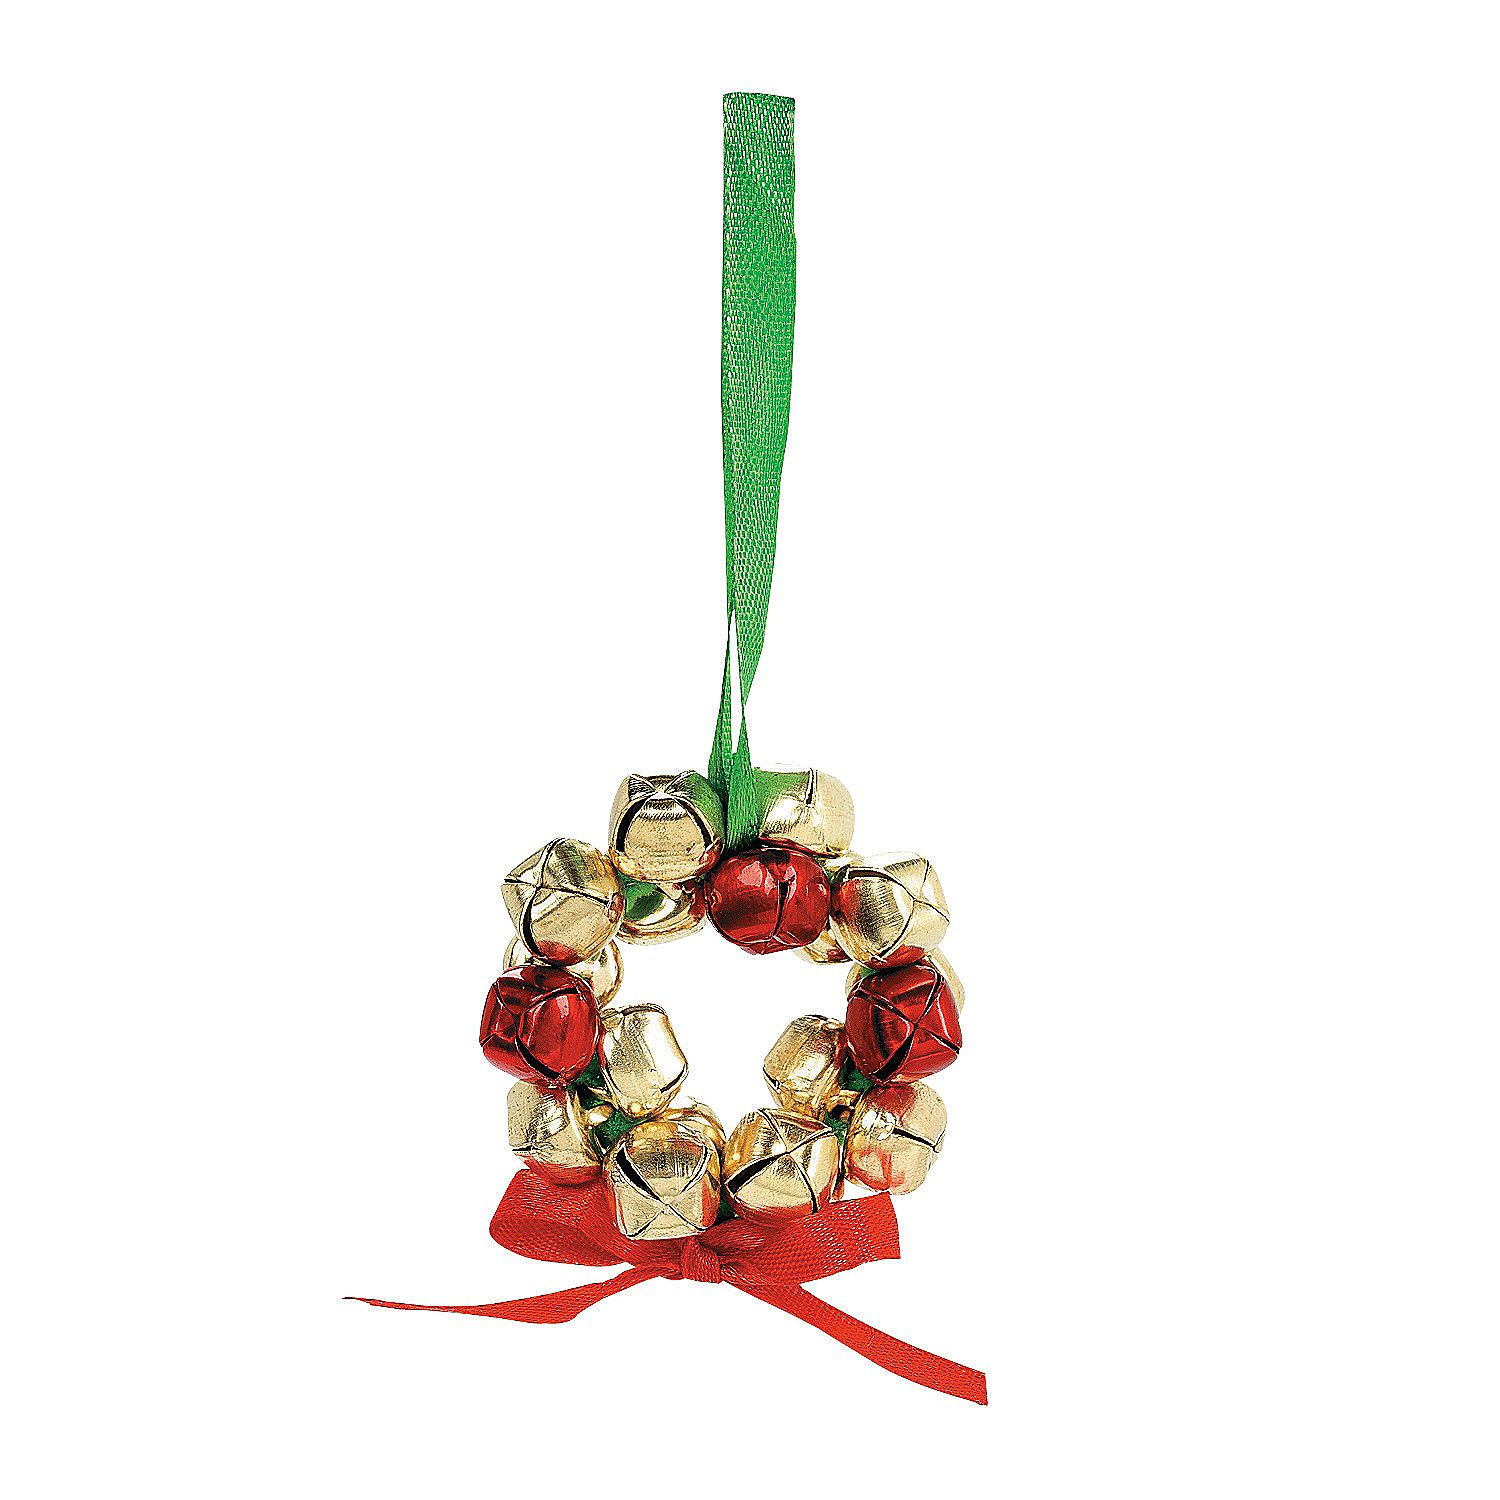 Making christmas decorations jingle bells - Metal Jingle Bell Wreath Ornament Craft Kit Orientaltrading Com